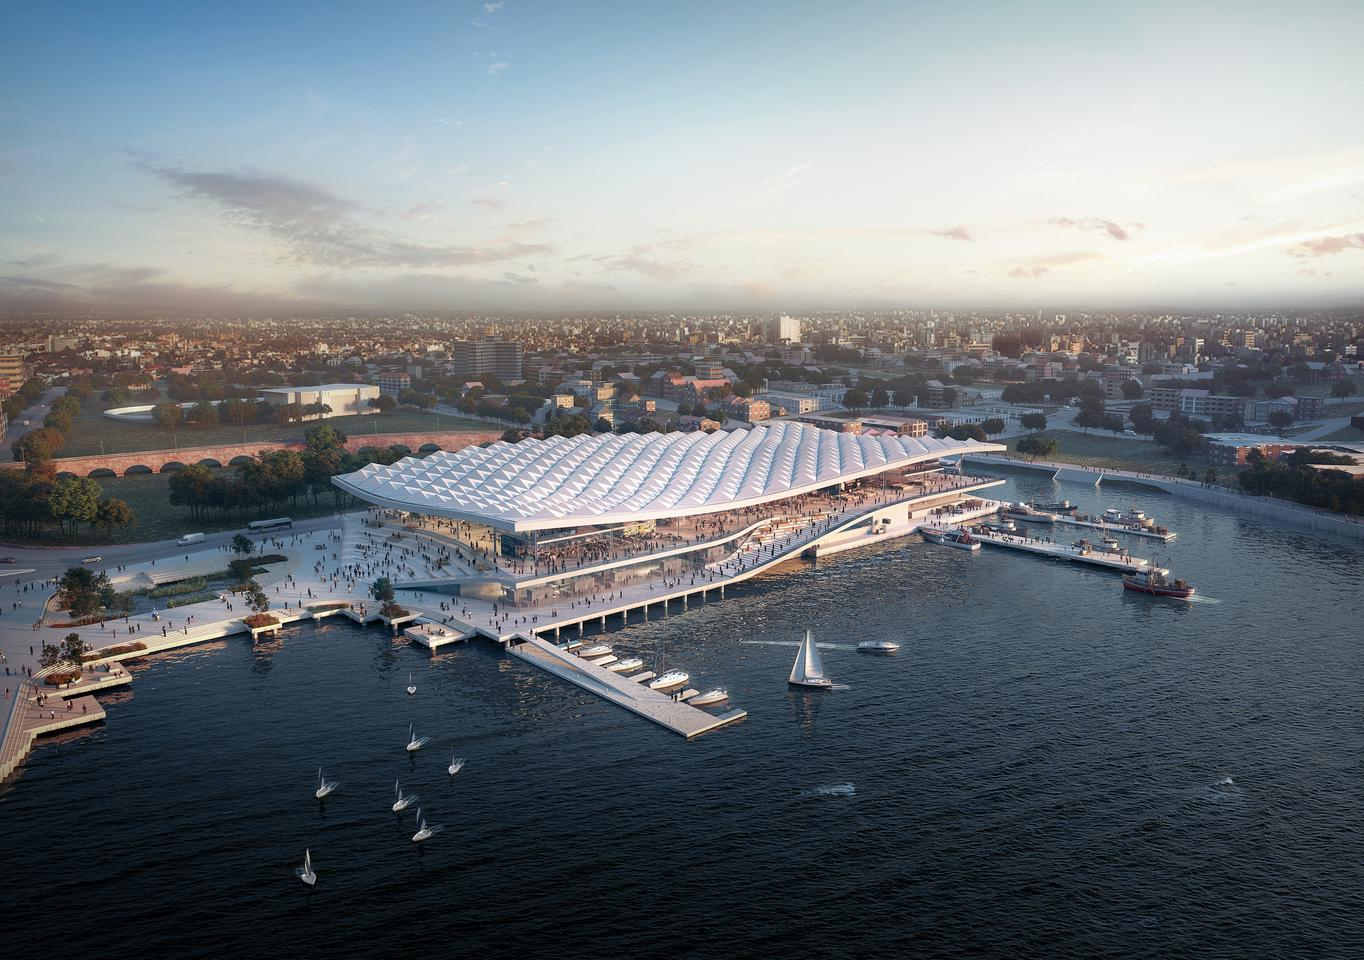 Sydney Fish Market is due to begin construction soon, with completion expected in 2024